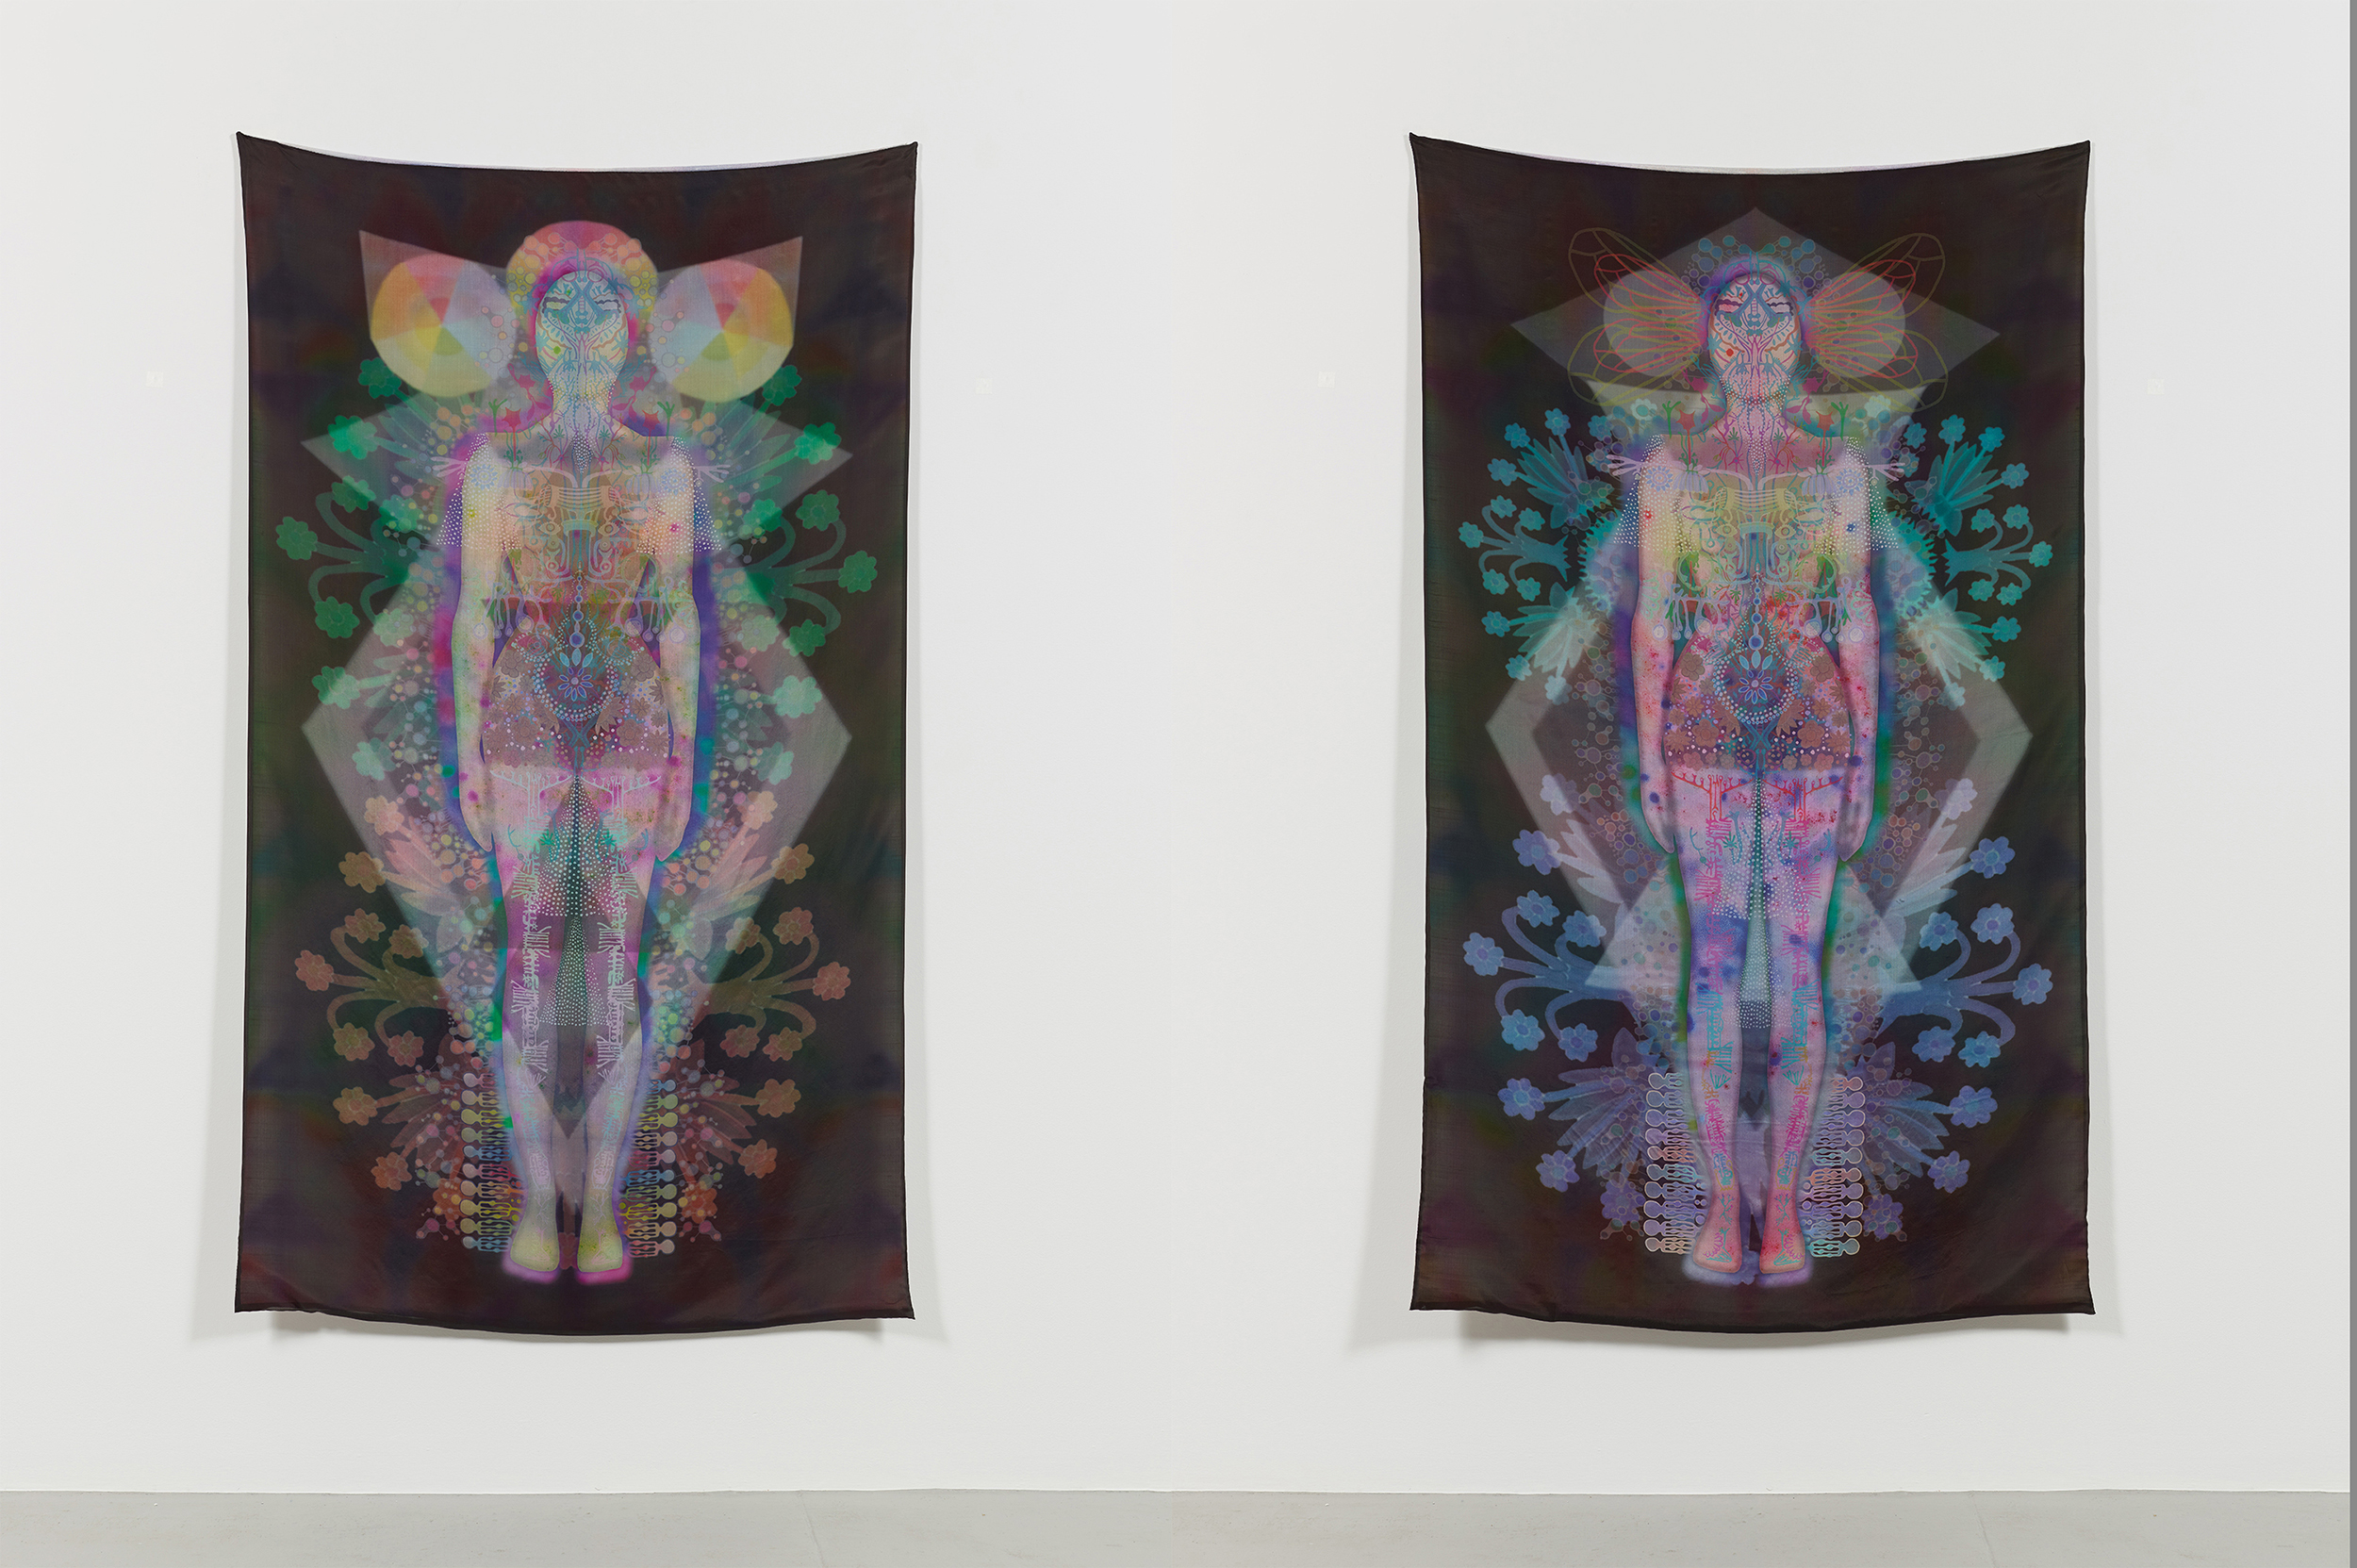 CloudSkin 3, Cloudskin 4  Unique Inkjet Prints on Habotai and Dupioni Silks 71 x 41 inches each 2016